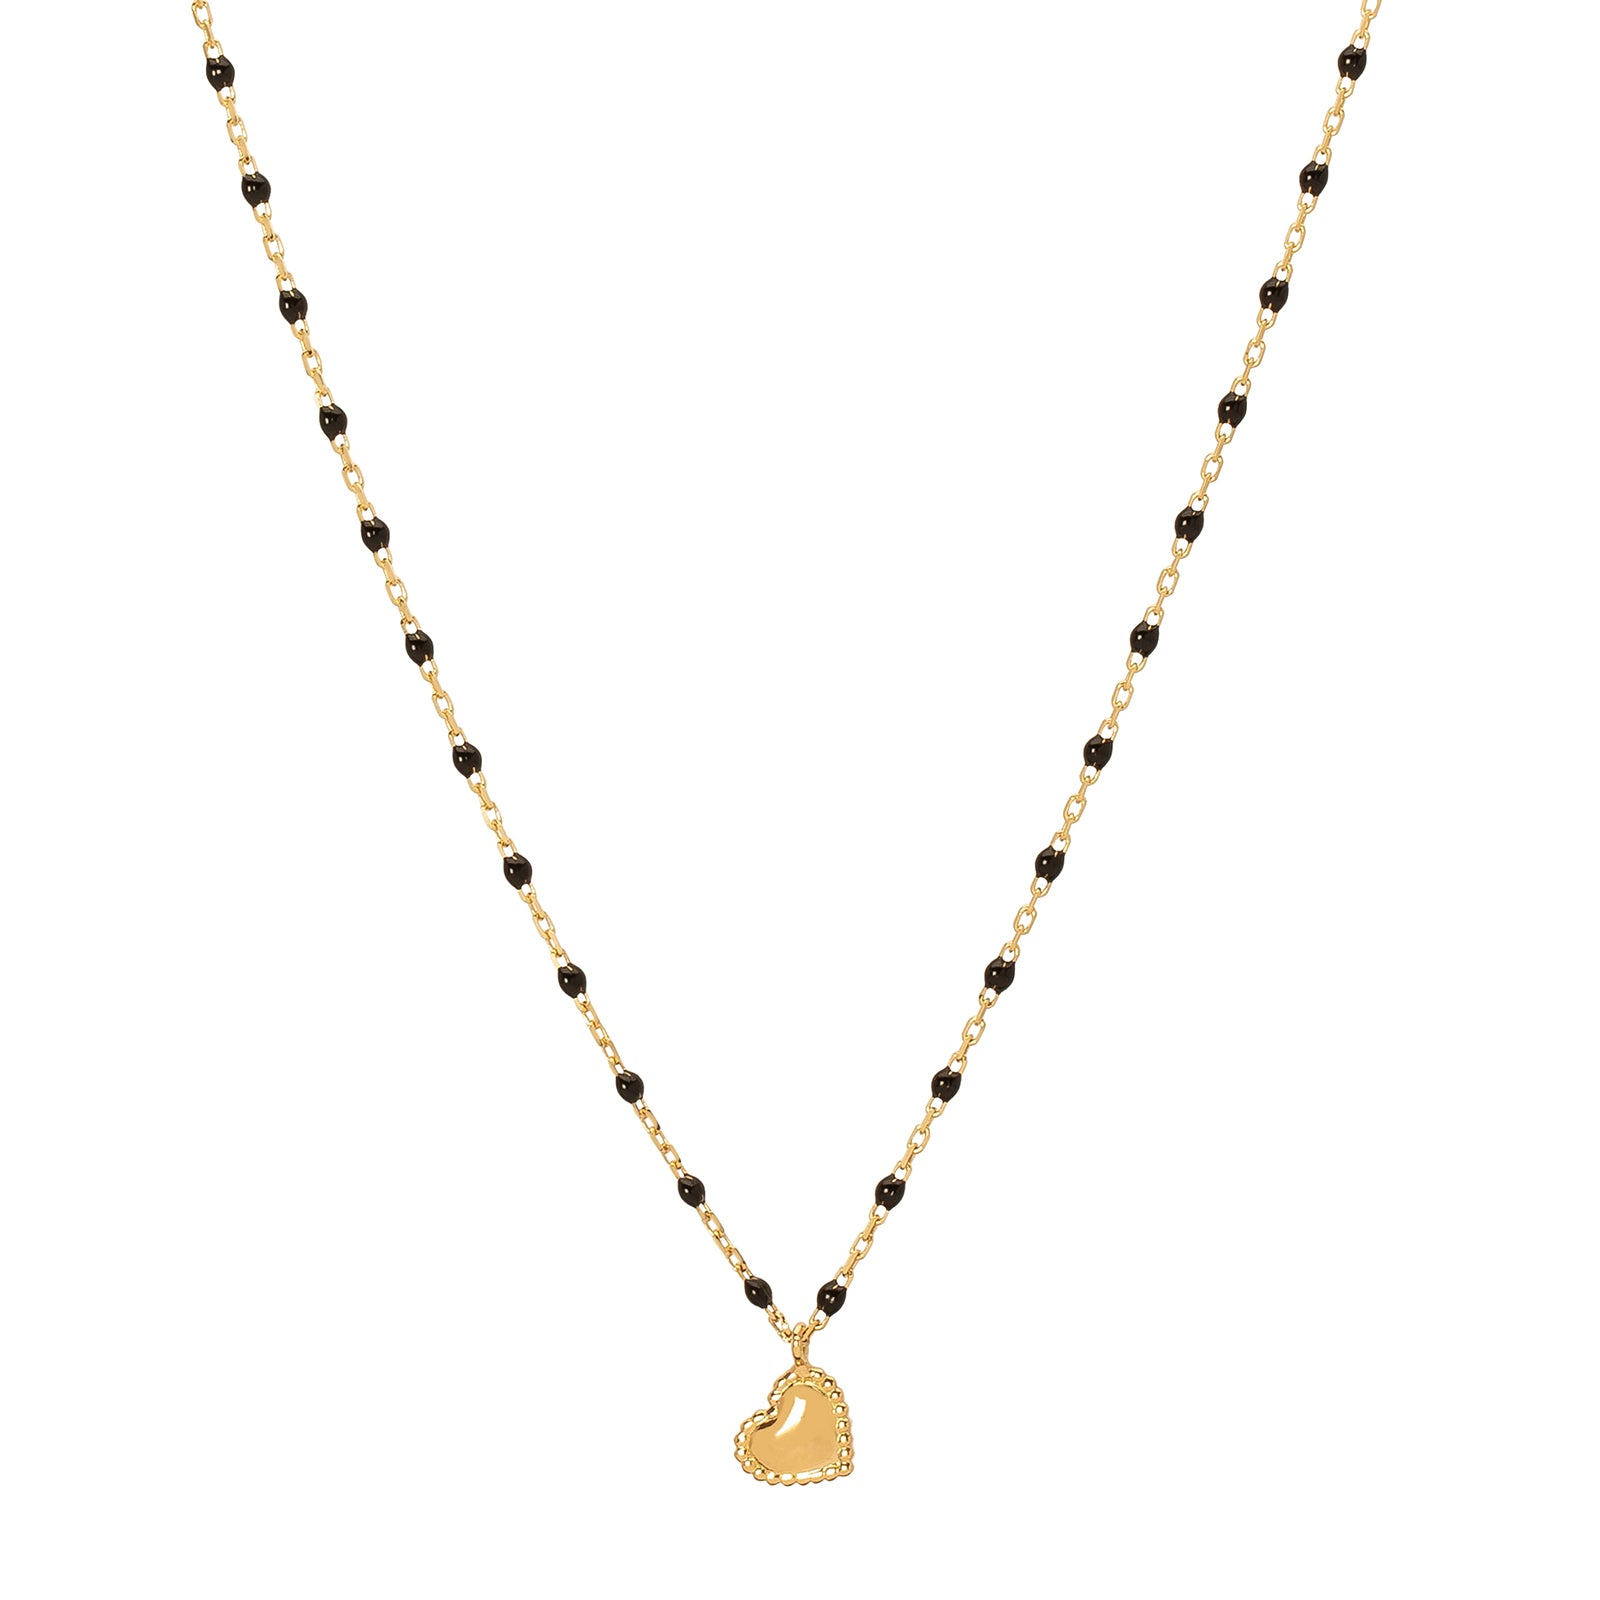 Gigi Clozeau Lucky Heart Necklace - Black - Necklaces - Broken English Jewelry